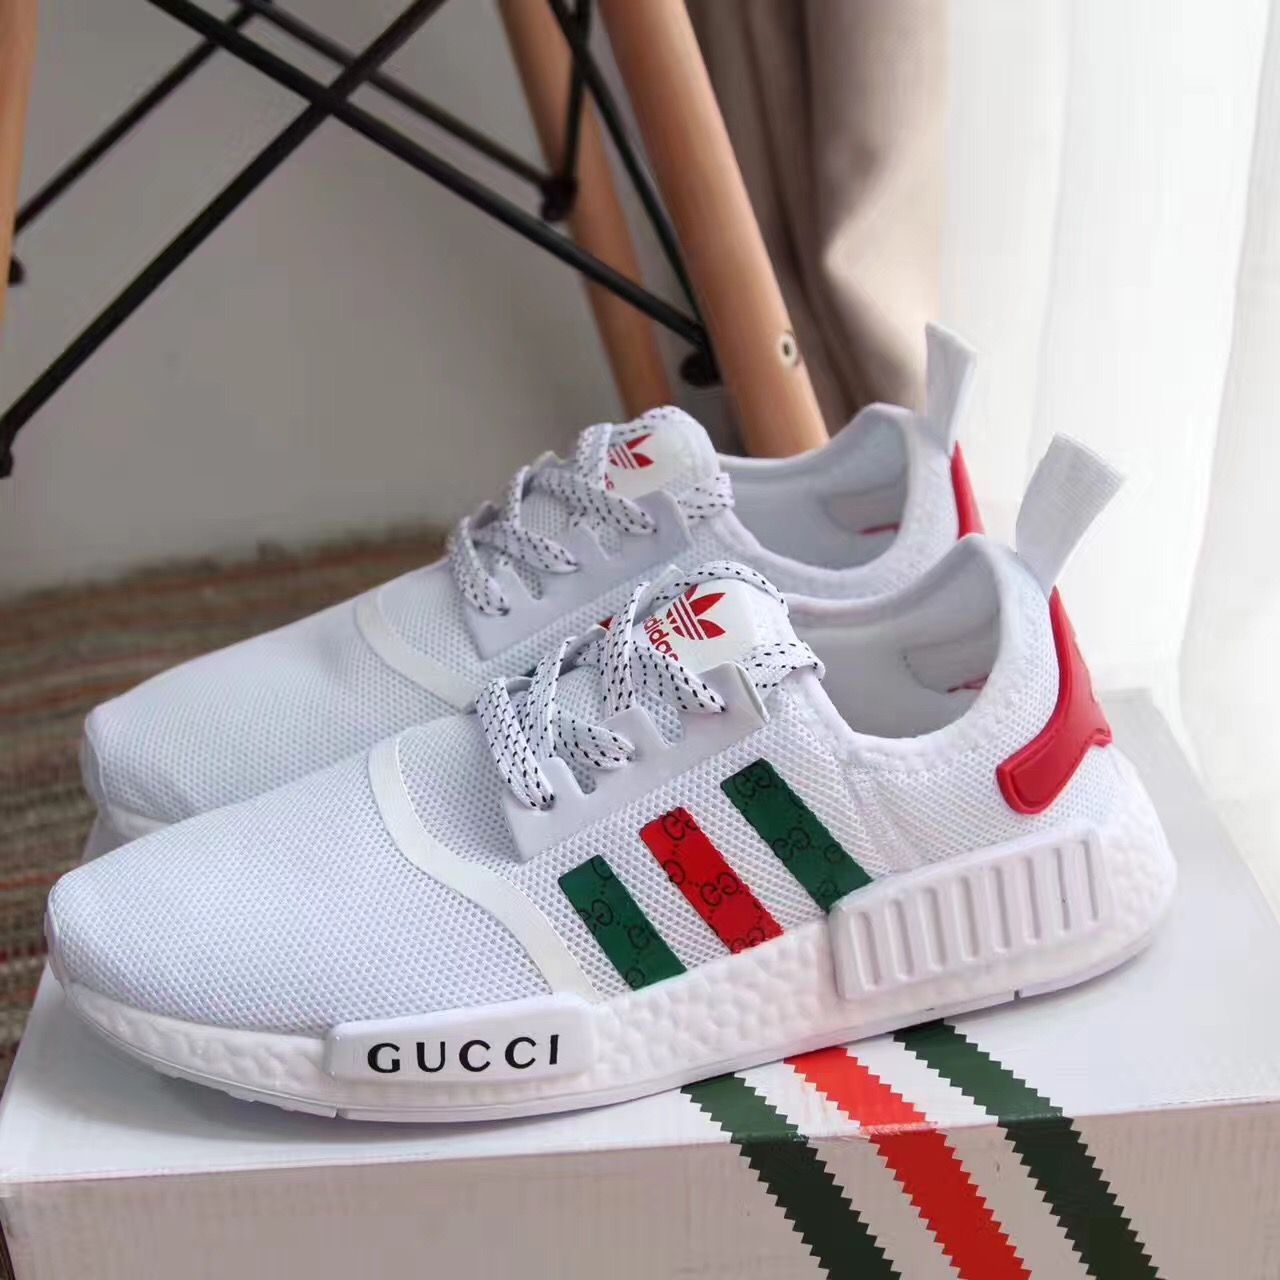 best loved 08761 a322a Adidas   Gucci woman man unisex sport sneakers shoes Adidasskor Herr,  Inspirerade Kläder, Gucci